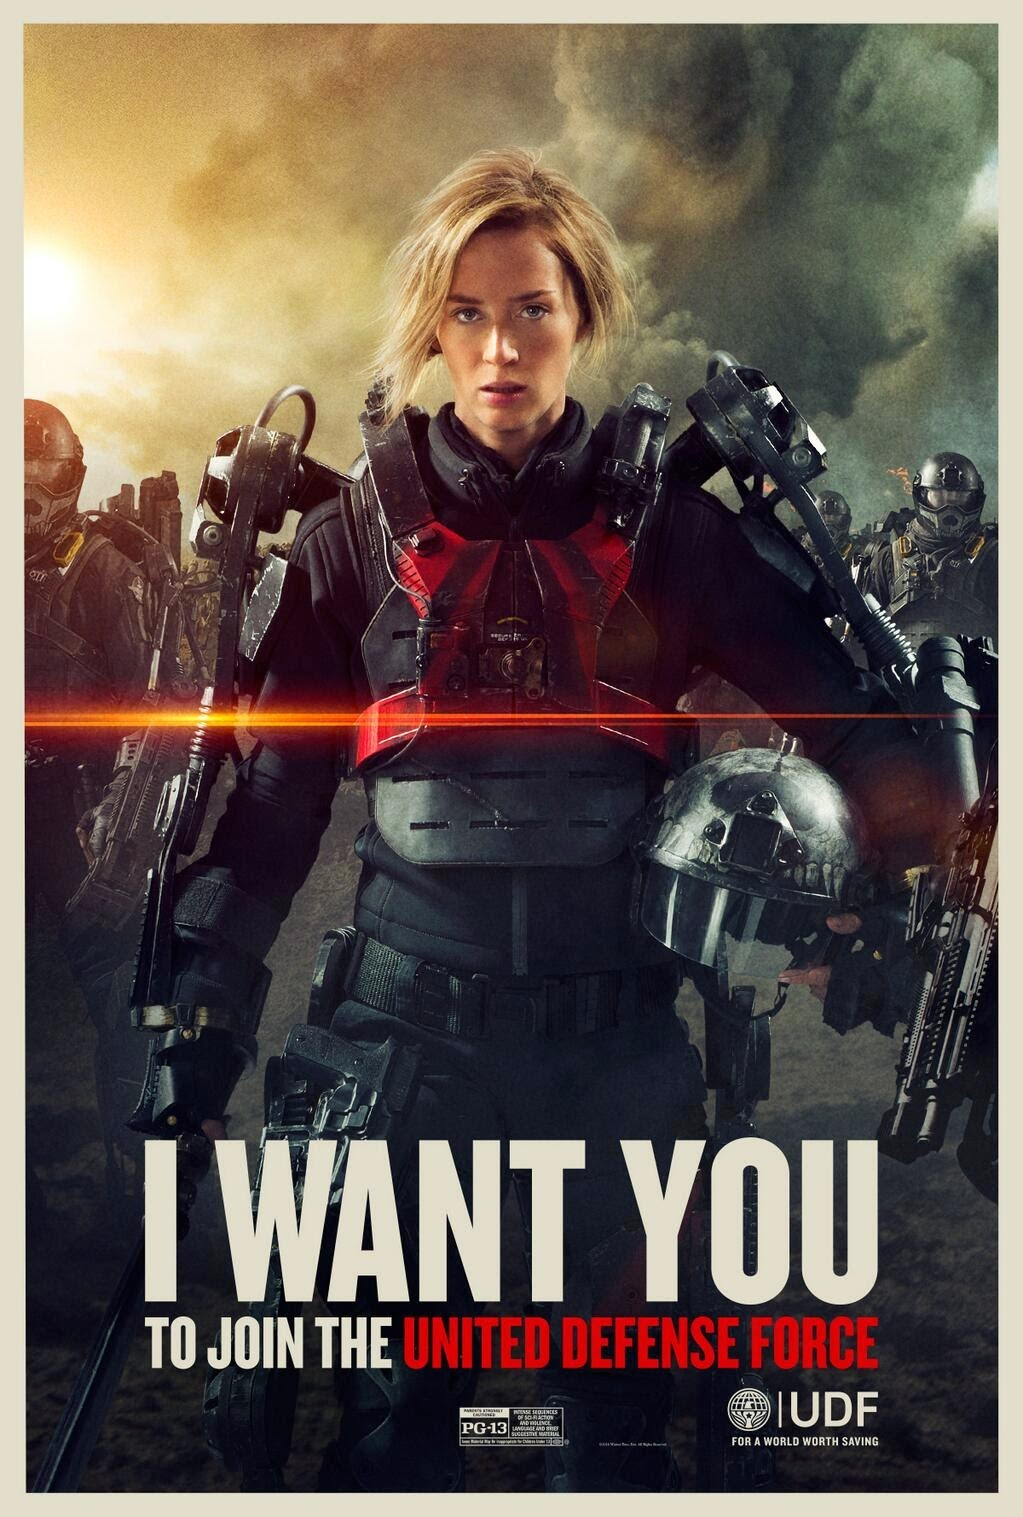 Edge-of-Tomorrow_Emily Blunt03.jpg